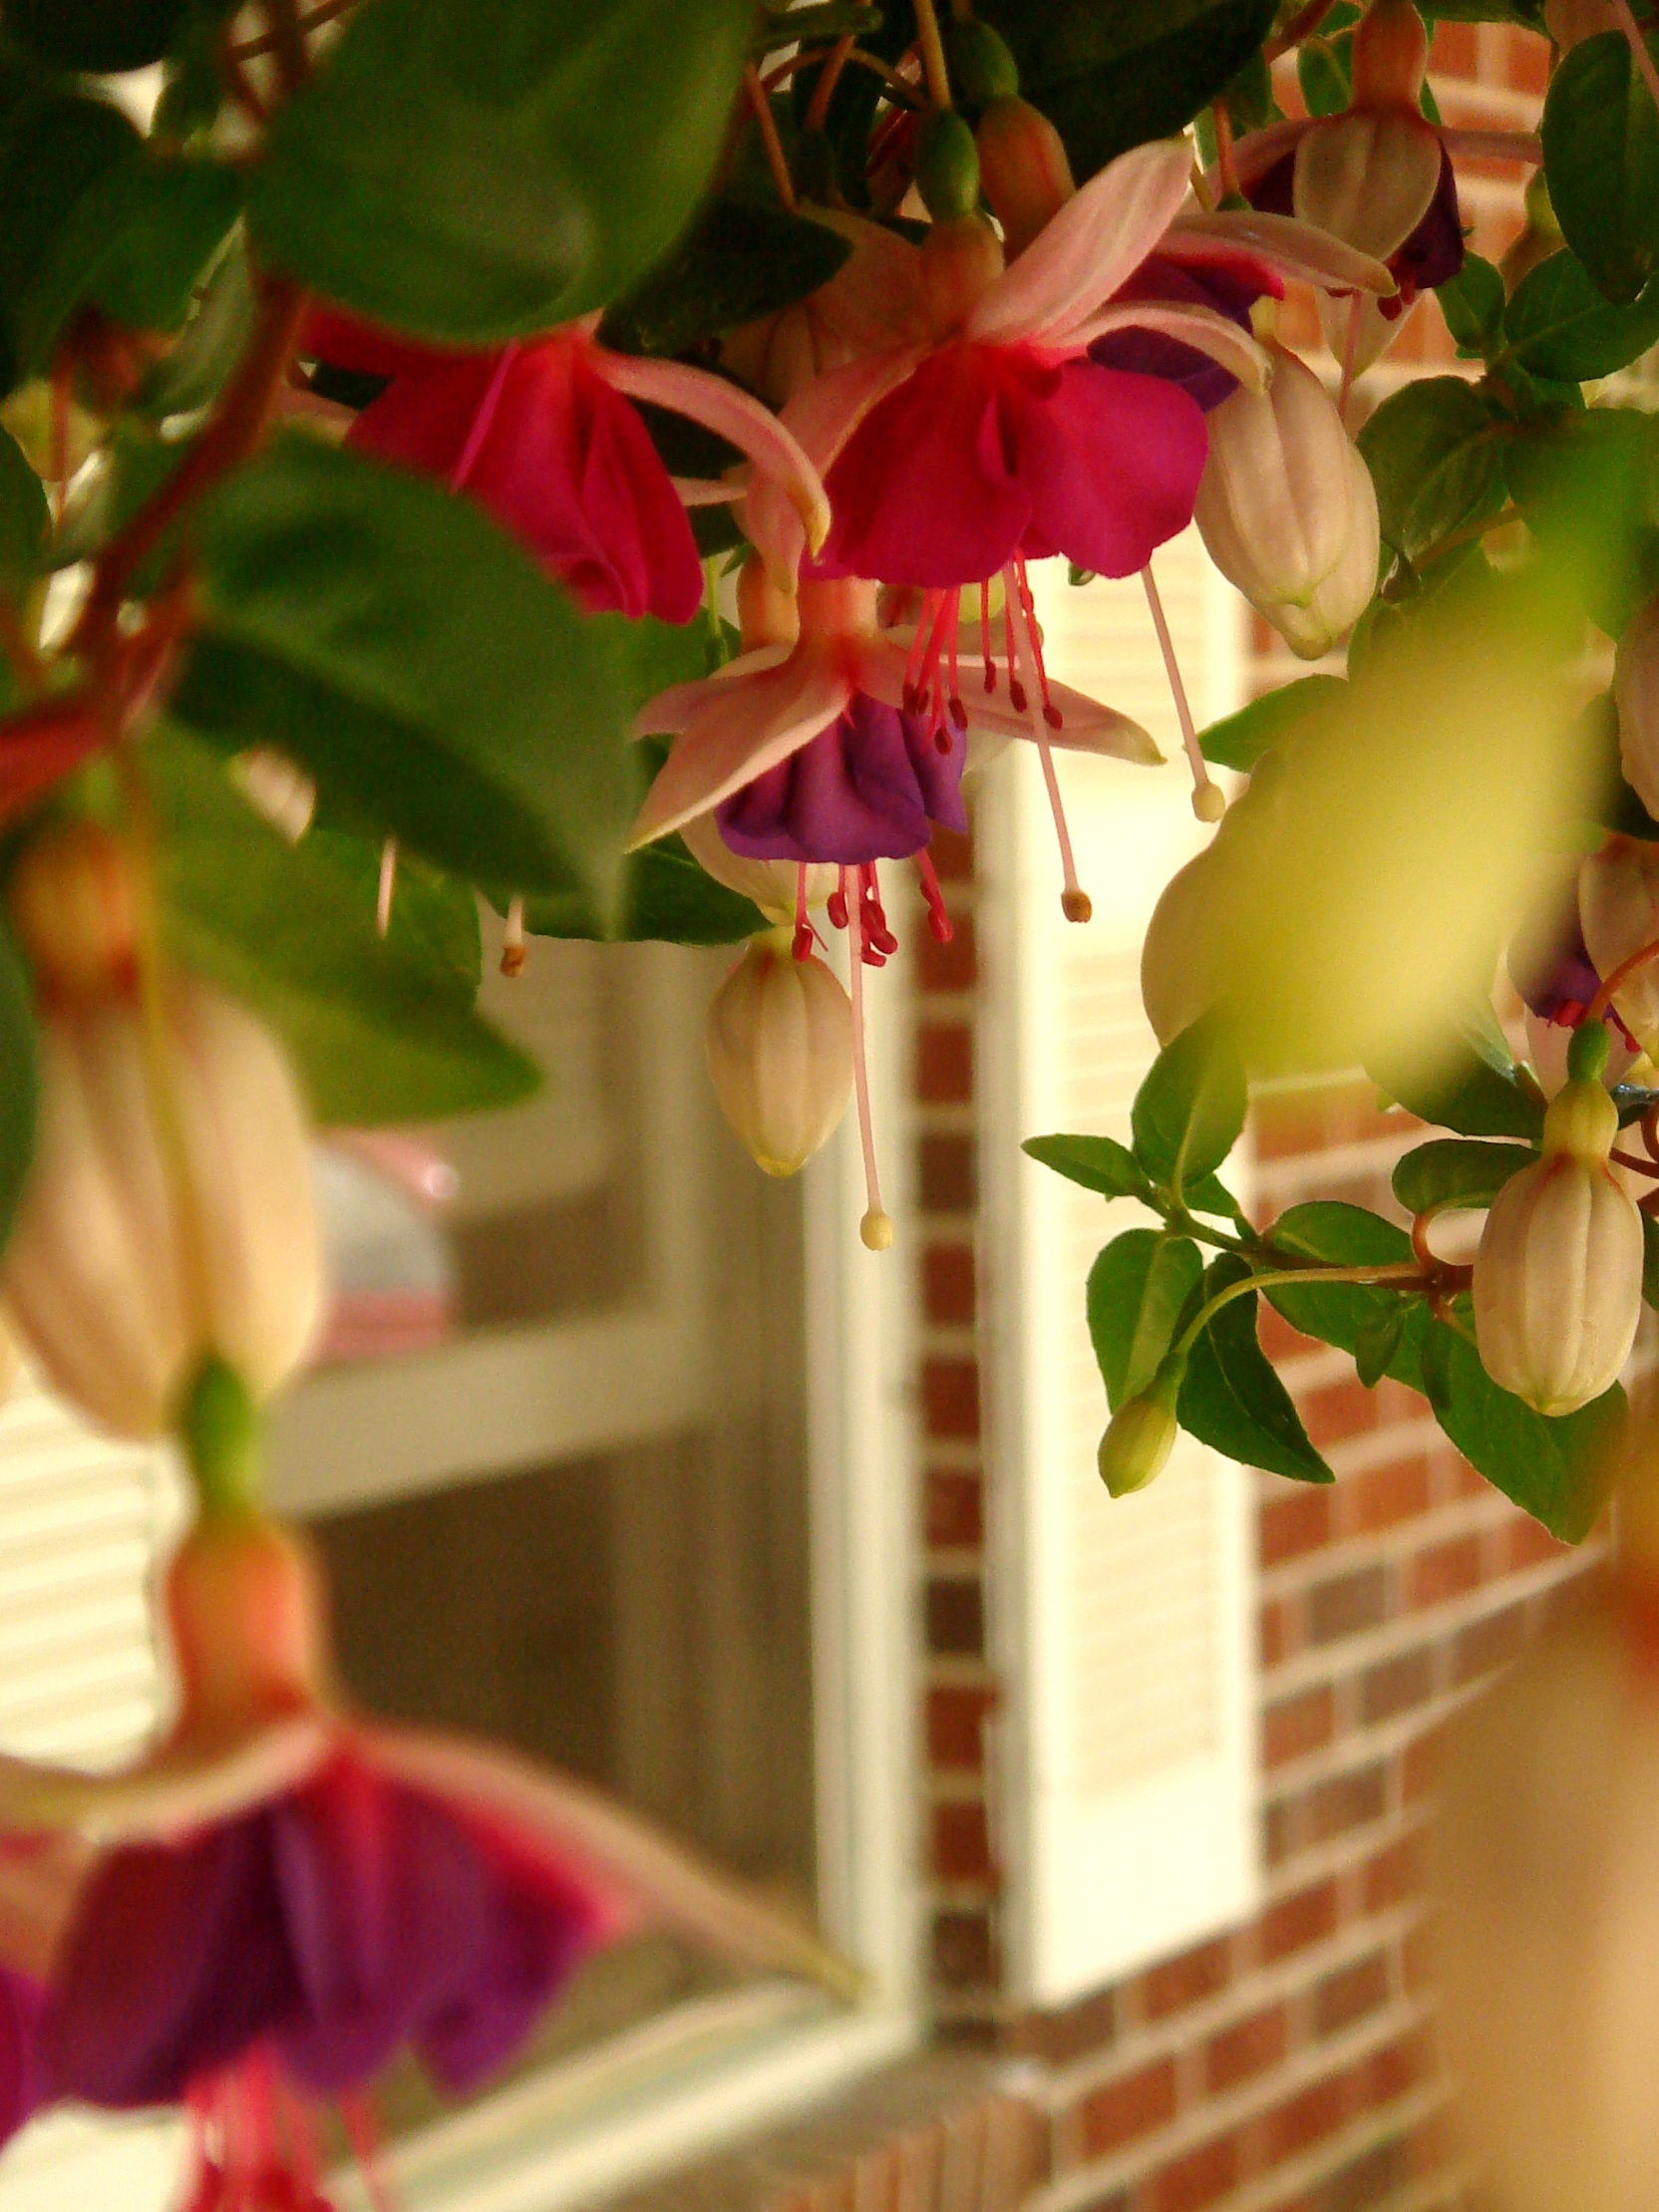 Fuchsia blooming in hanging basket, window.